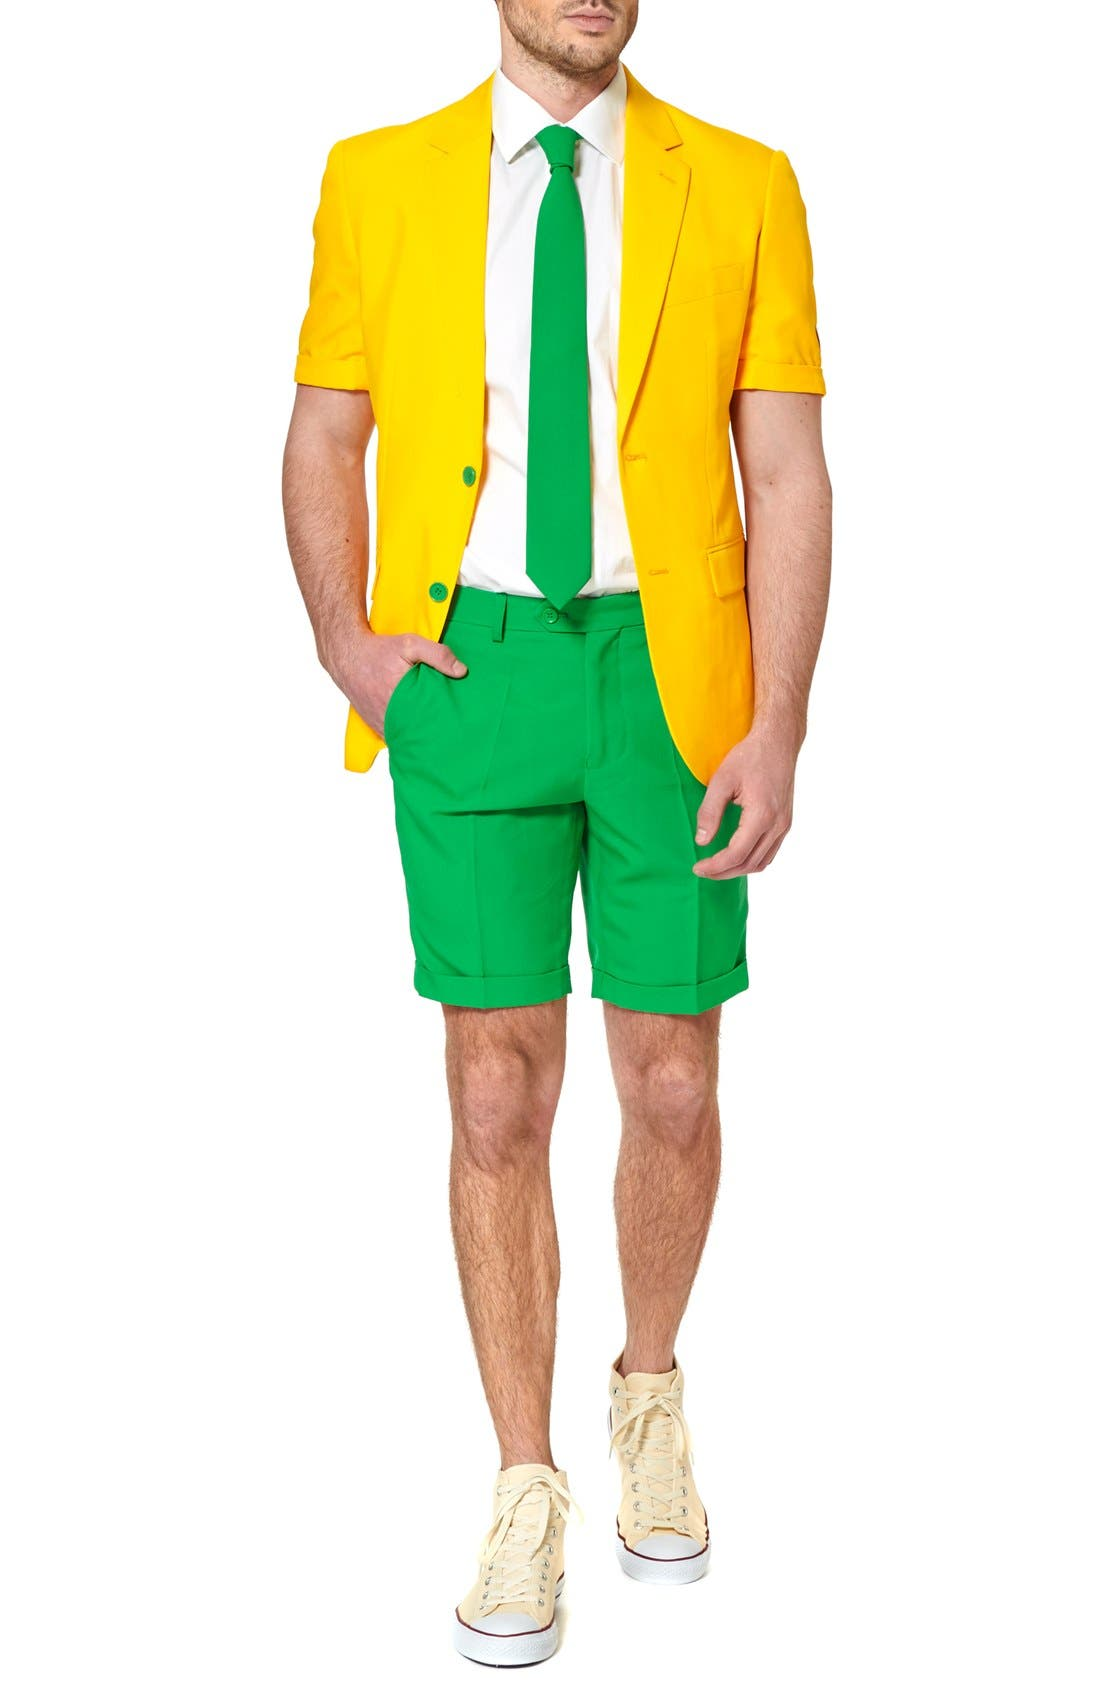 OppoSuits 'Summer Green & Gold' Trim Fit Short Suit with Tie